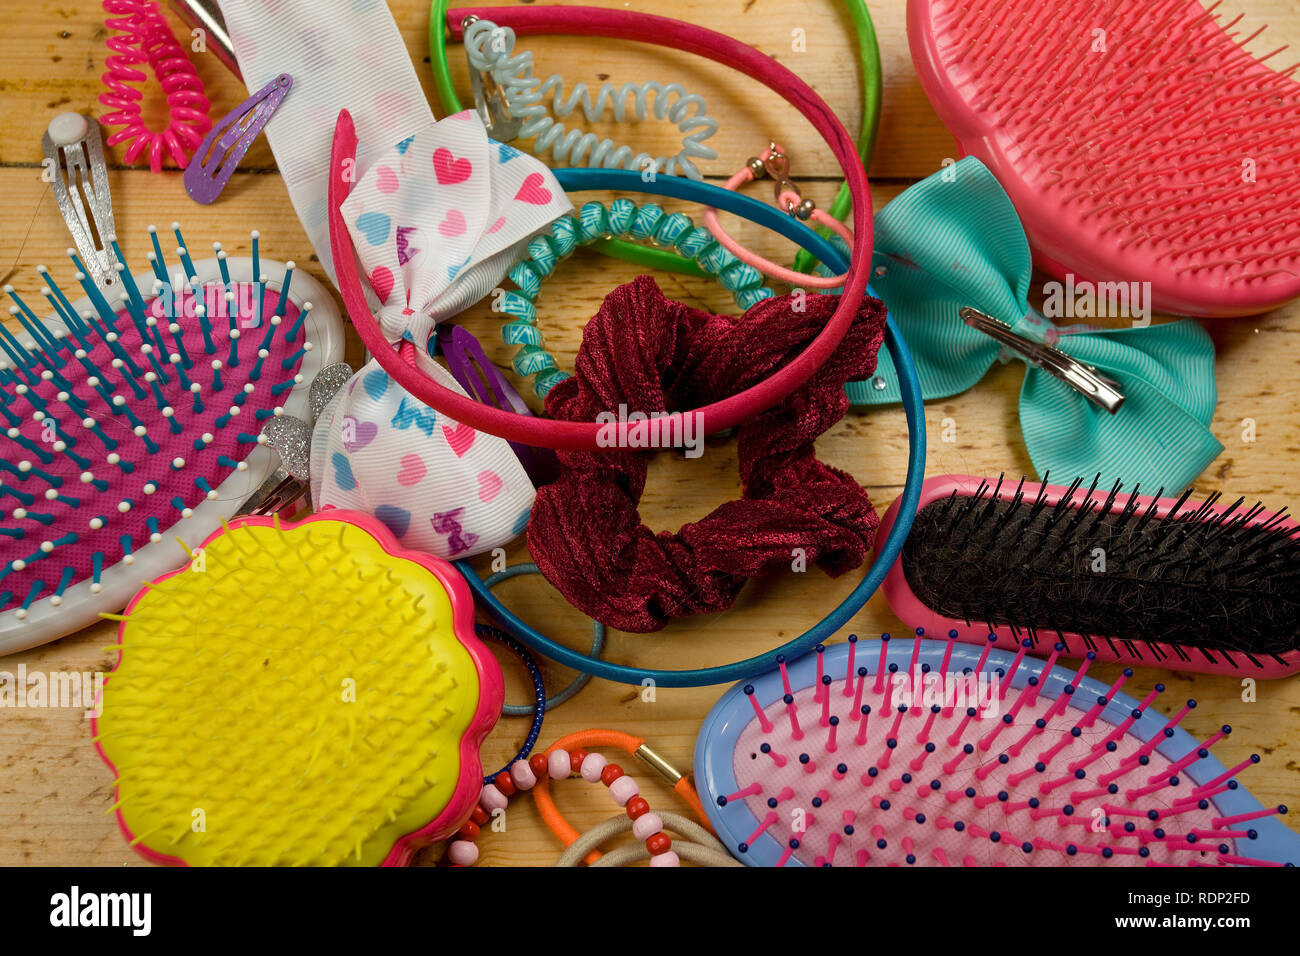 Childrens hair accessories - Stock Image